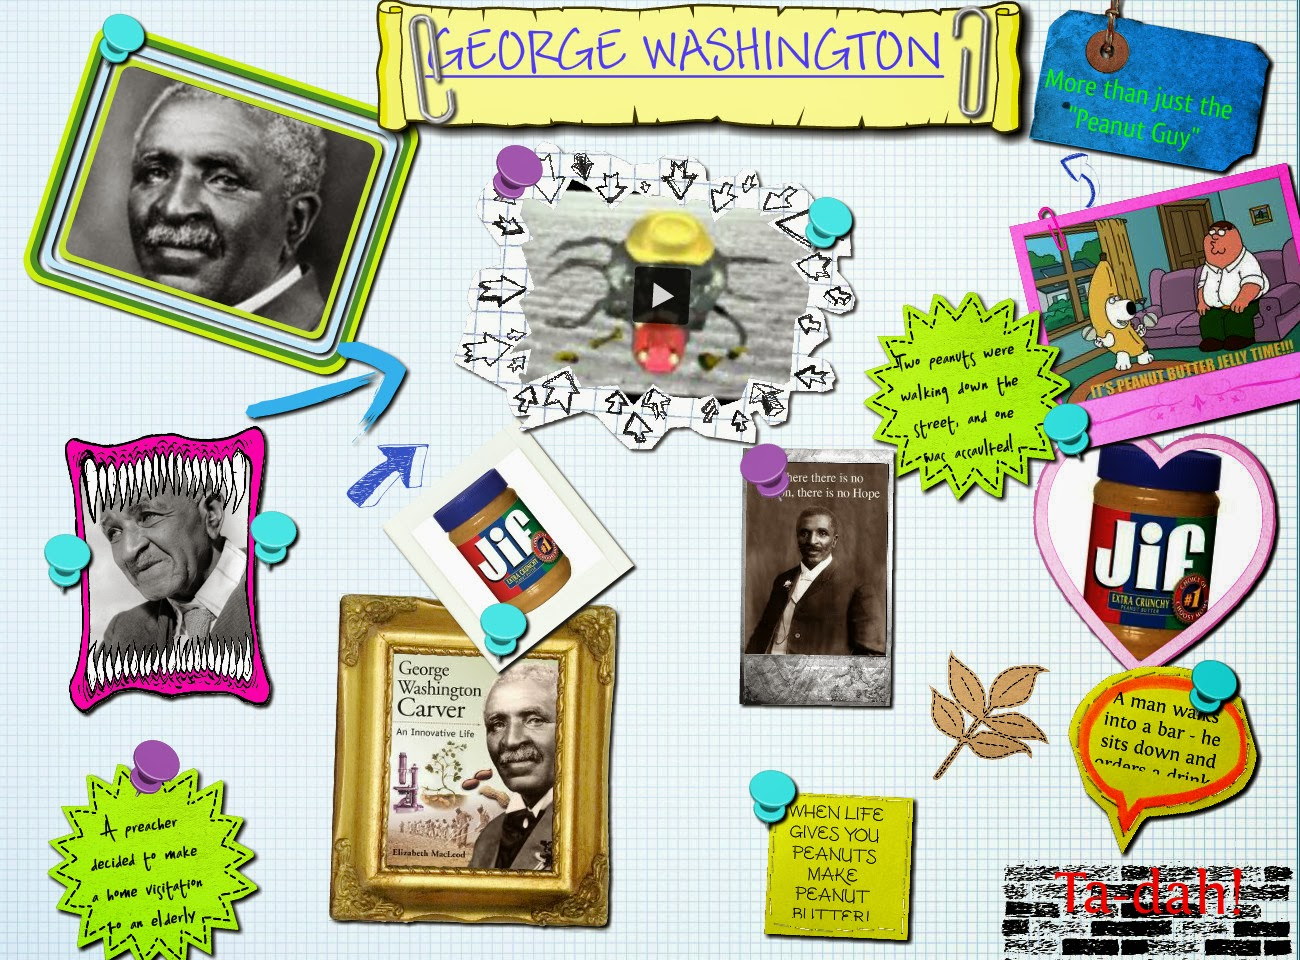 Mrs Jackson S Class Website Blog George Washington Carver